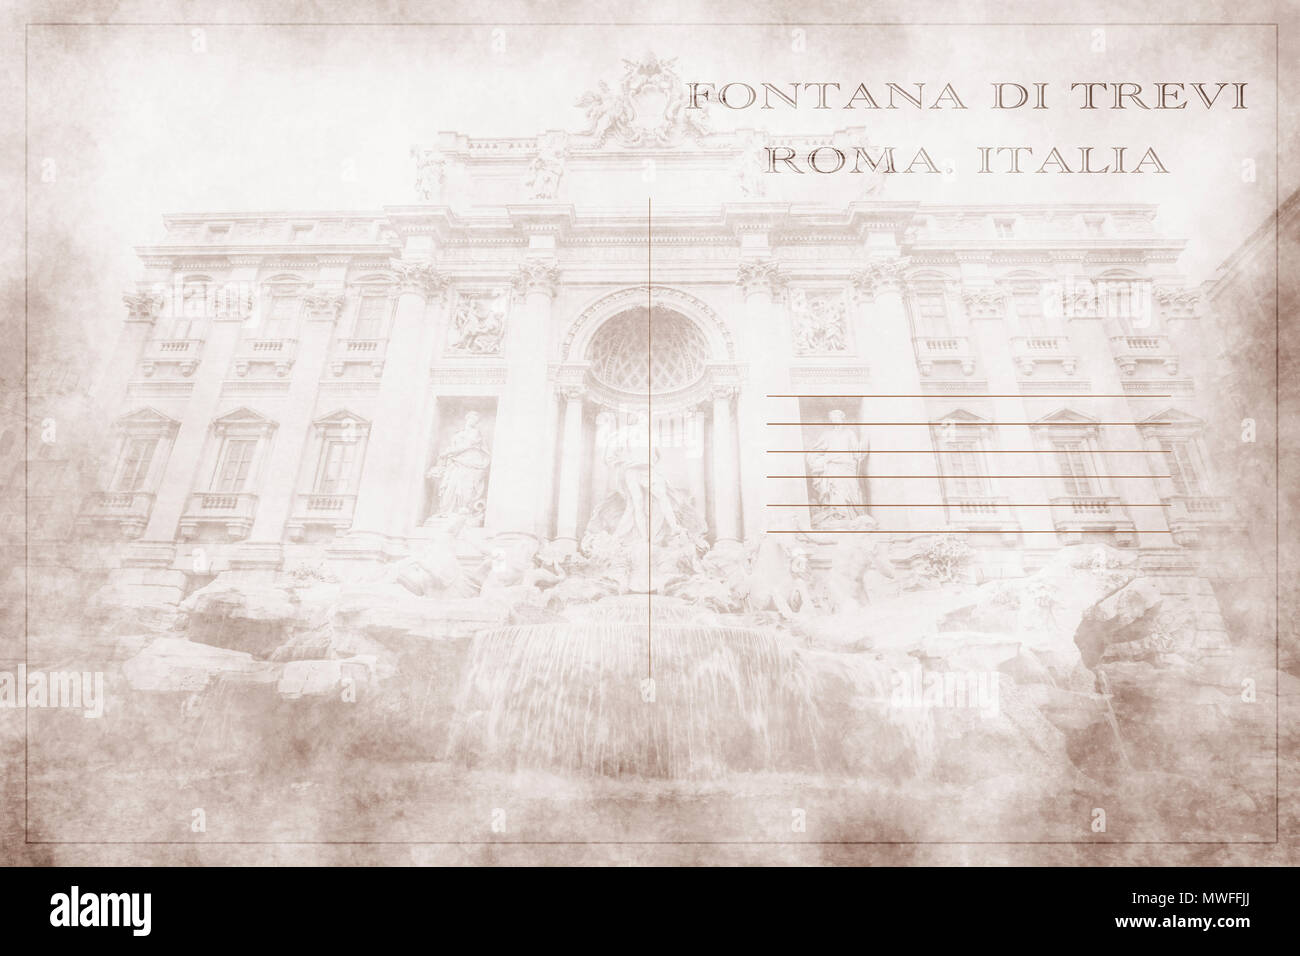 Postcard with a photograph of the Fontana di Trevi of Rome. Stock Photo